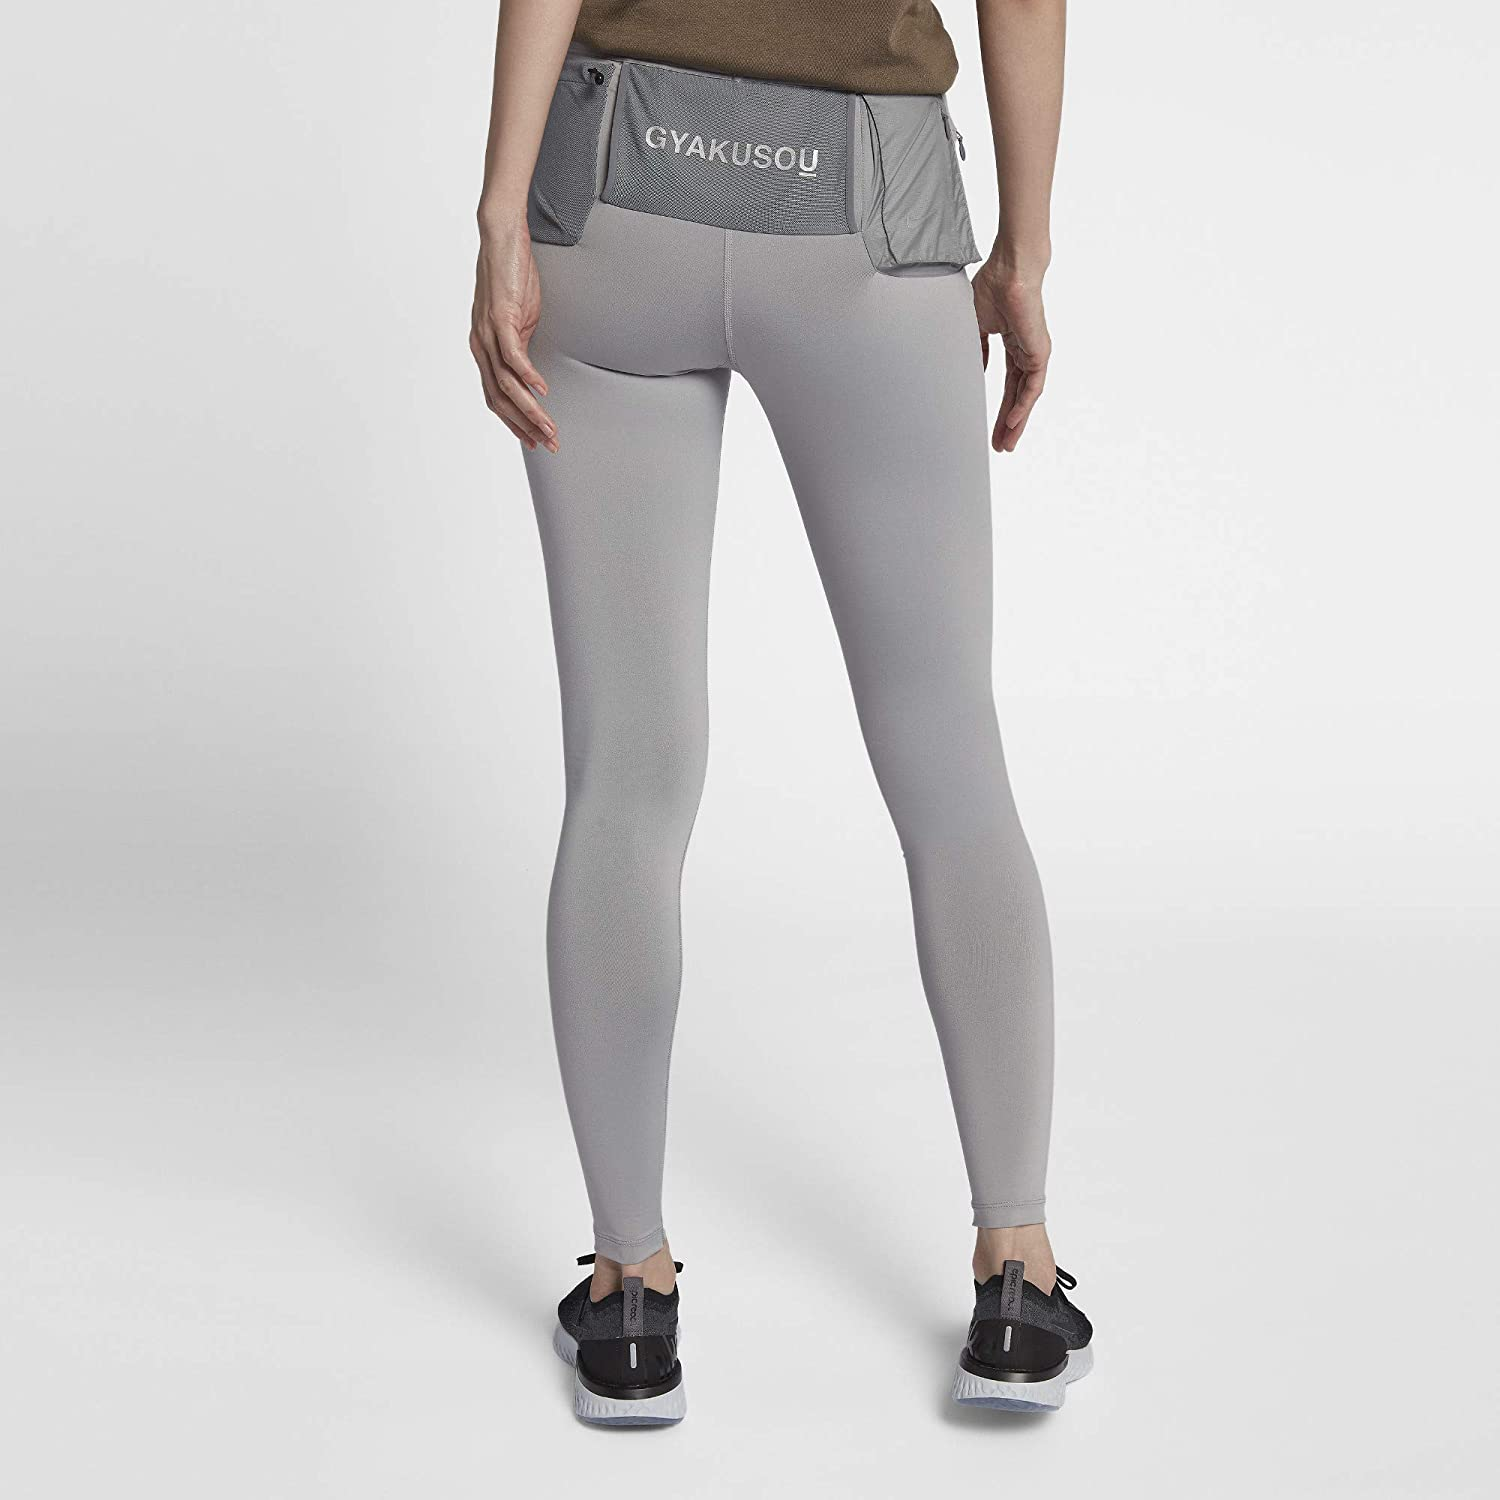 b281a3e30325a Amazon.com: Nike Gyakusou Women's Utility Running Tights: Clothing